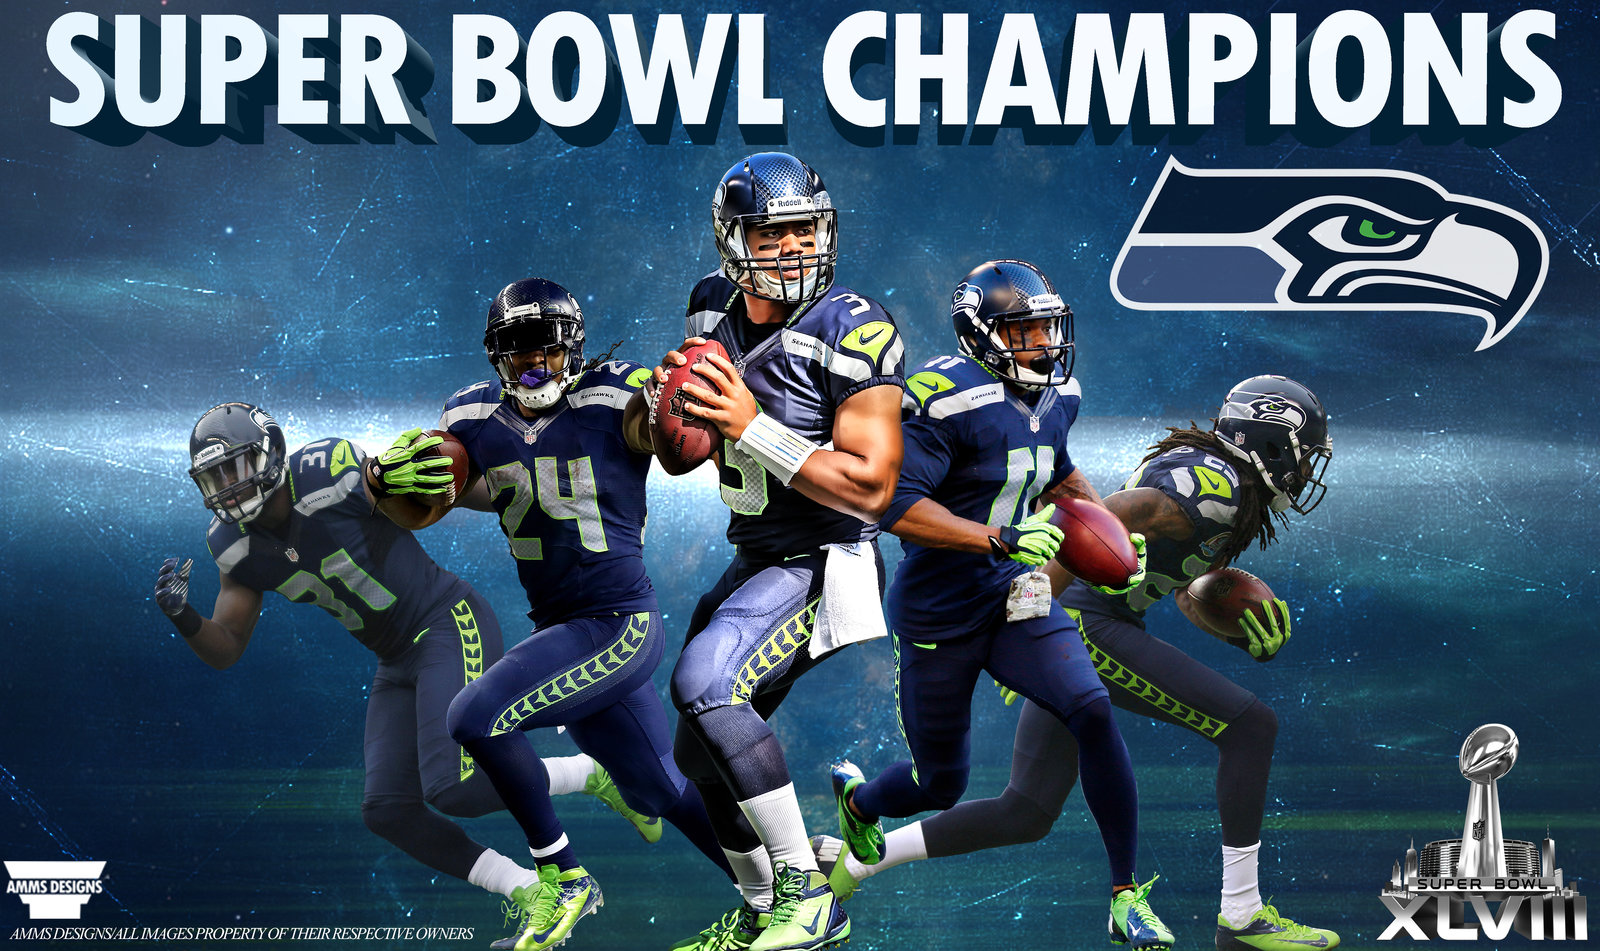 Champions Image: Seahawks Super Bowl Clipart